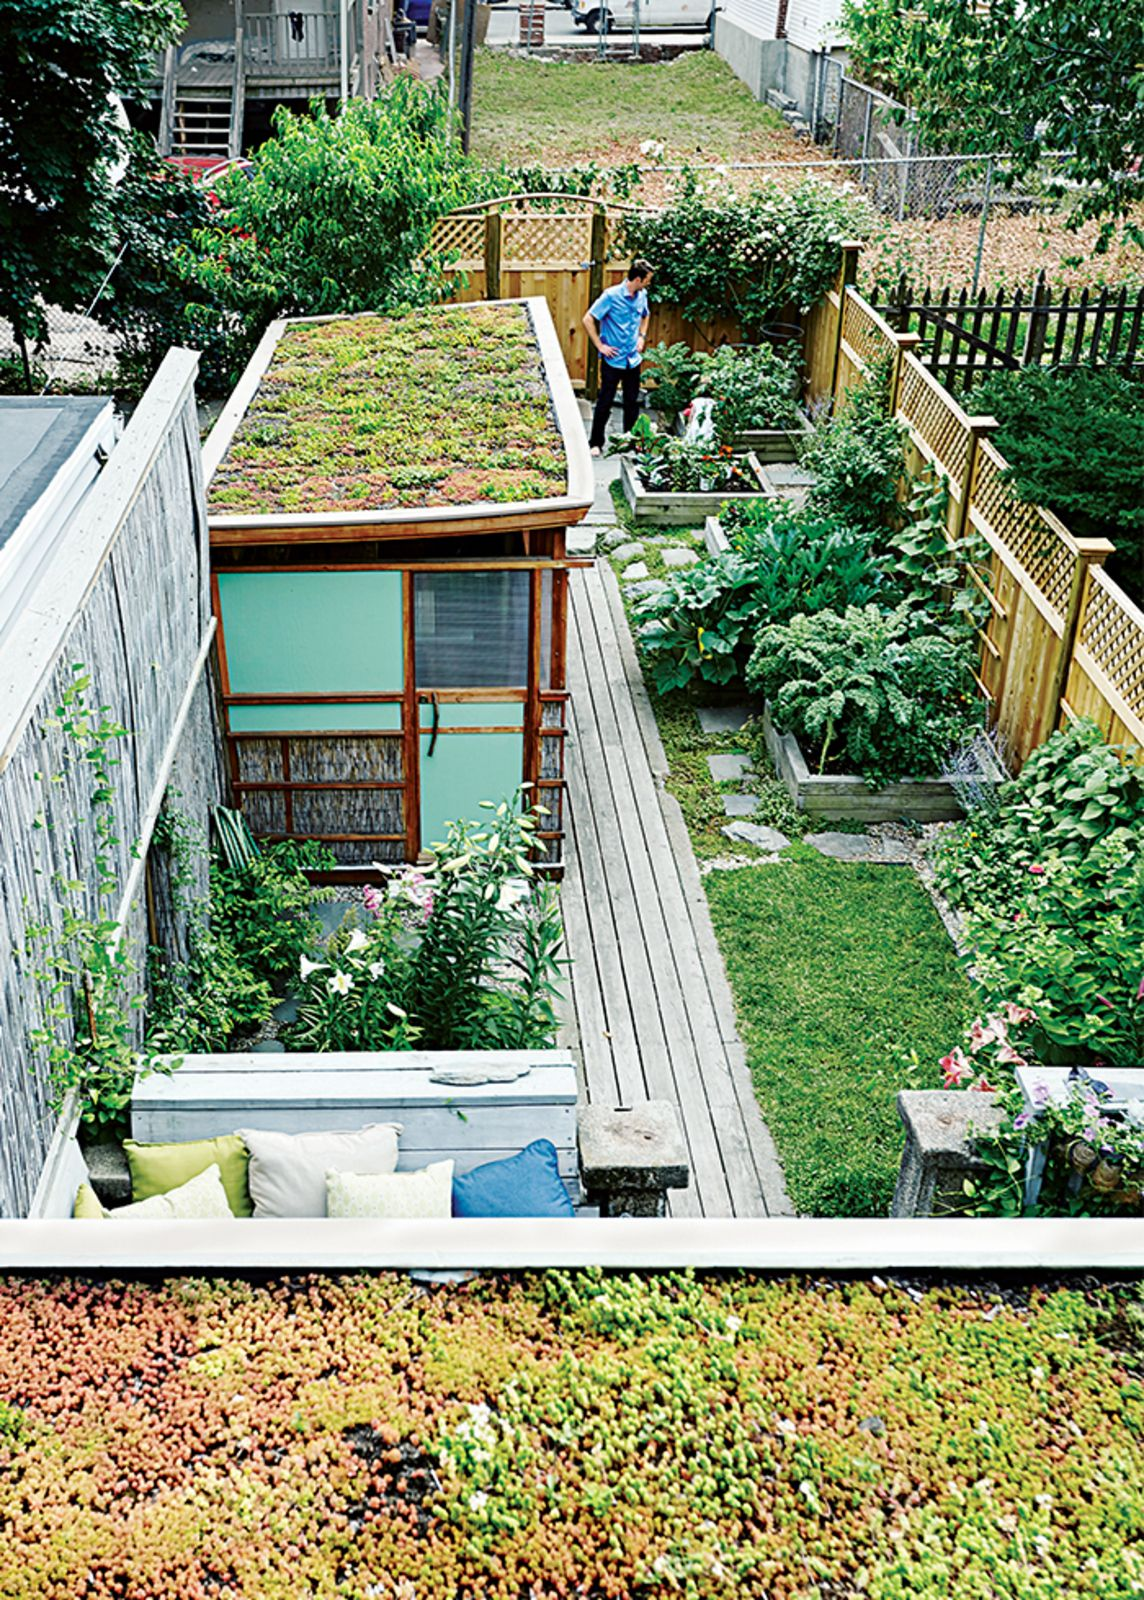 Run Down Row House In Boston Becomes A Quiet Urban Escape With Two Green Roofs Roof Plants Green Roof House Backyard Row house backyard design